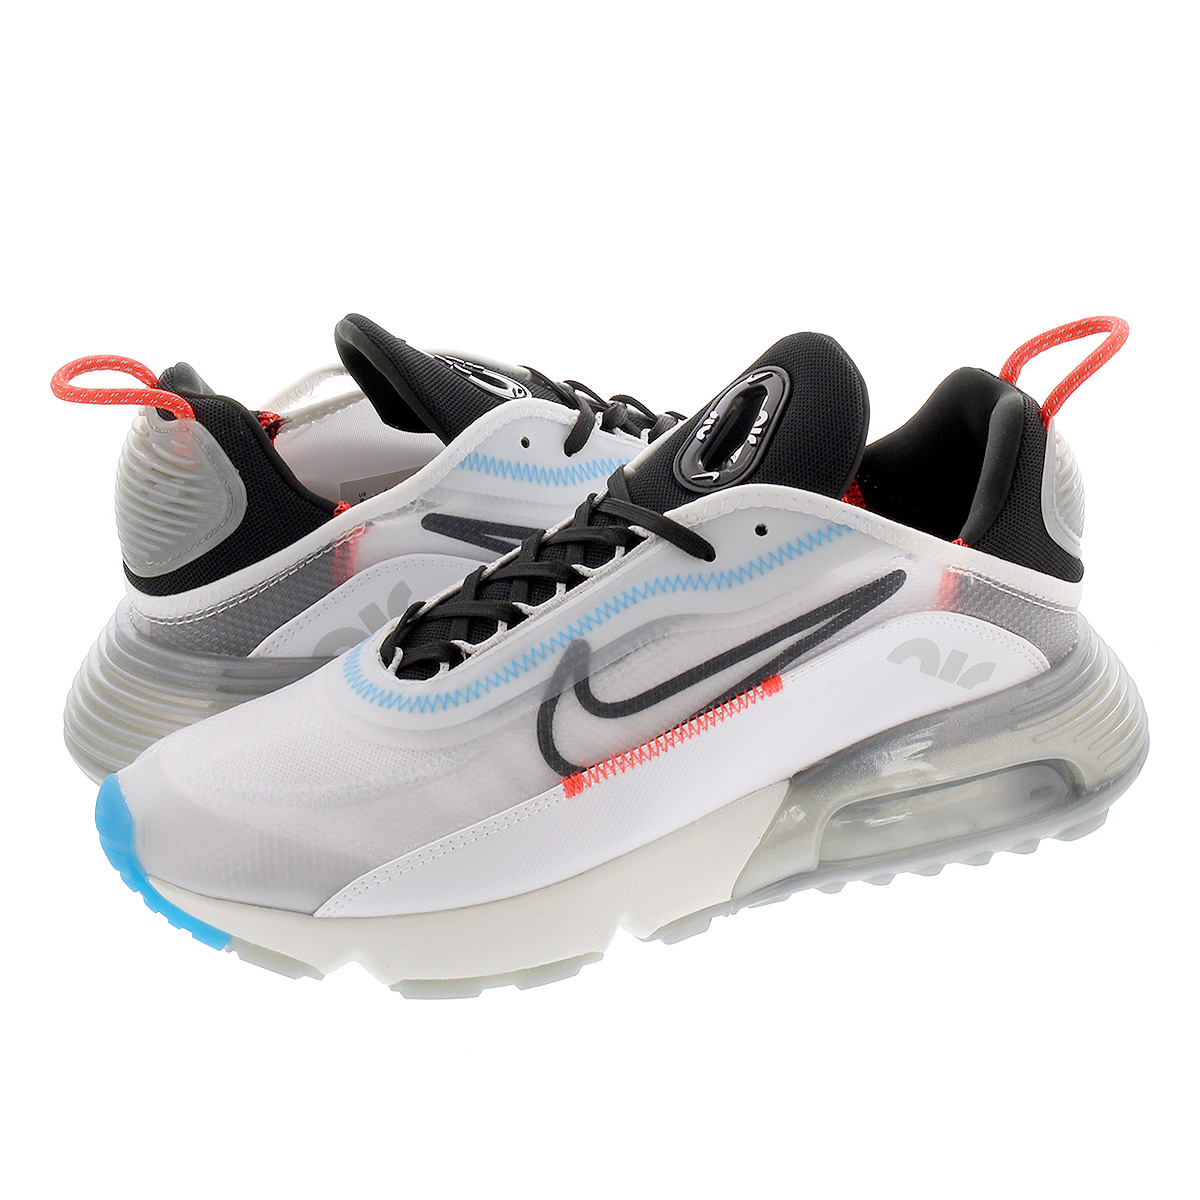 NIKE AIR MAX 2090 ナイキ エア マックス 2090 WHITE/BLACK/PURE PLATINUM/BRIGHT CRIMSON ct7695-100